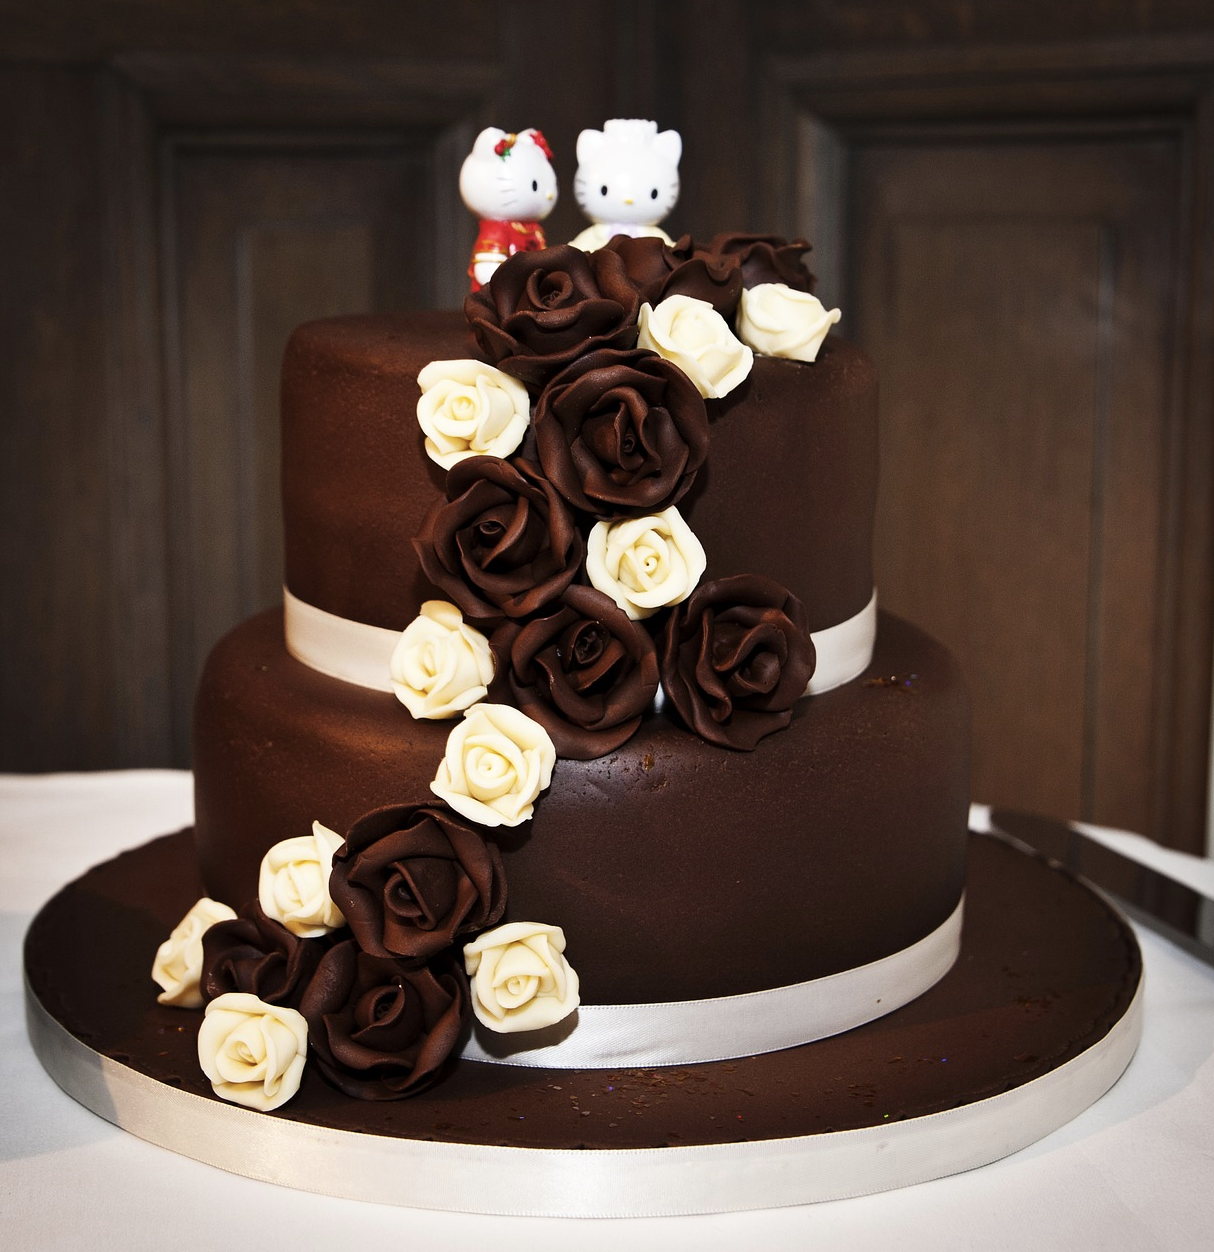 3 layer chocolate wedding cake with couple hello kitty character on the top